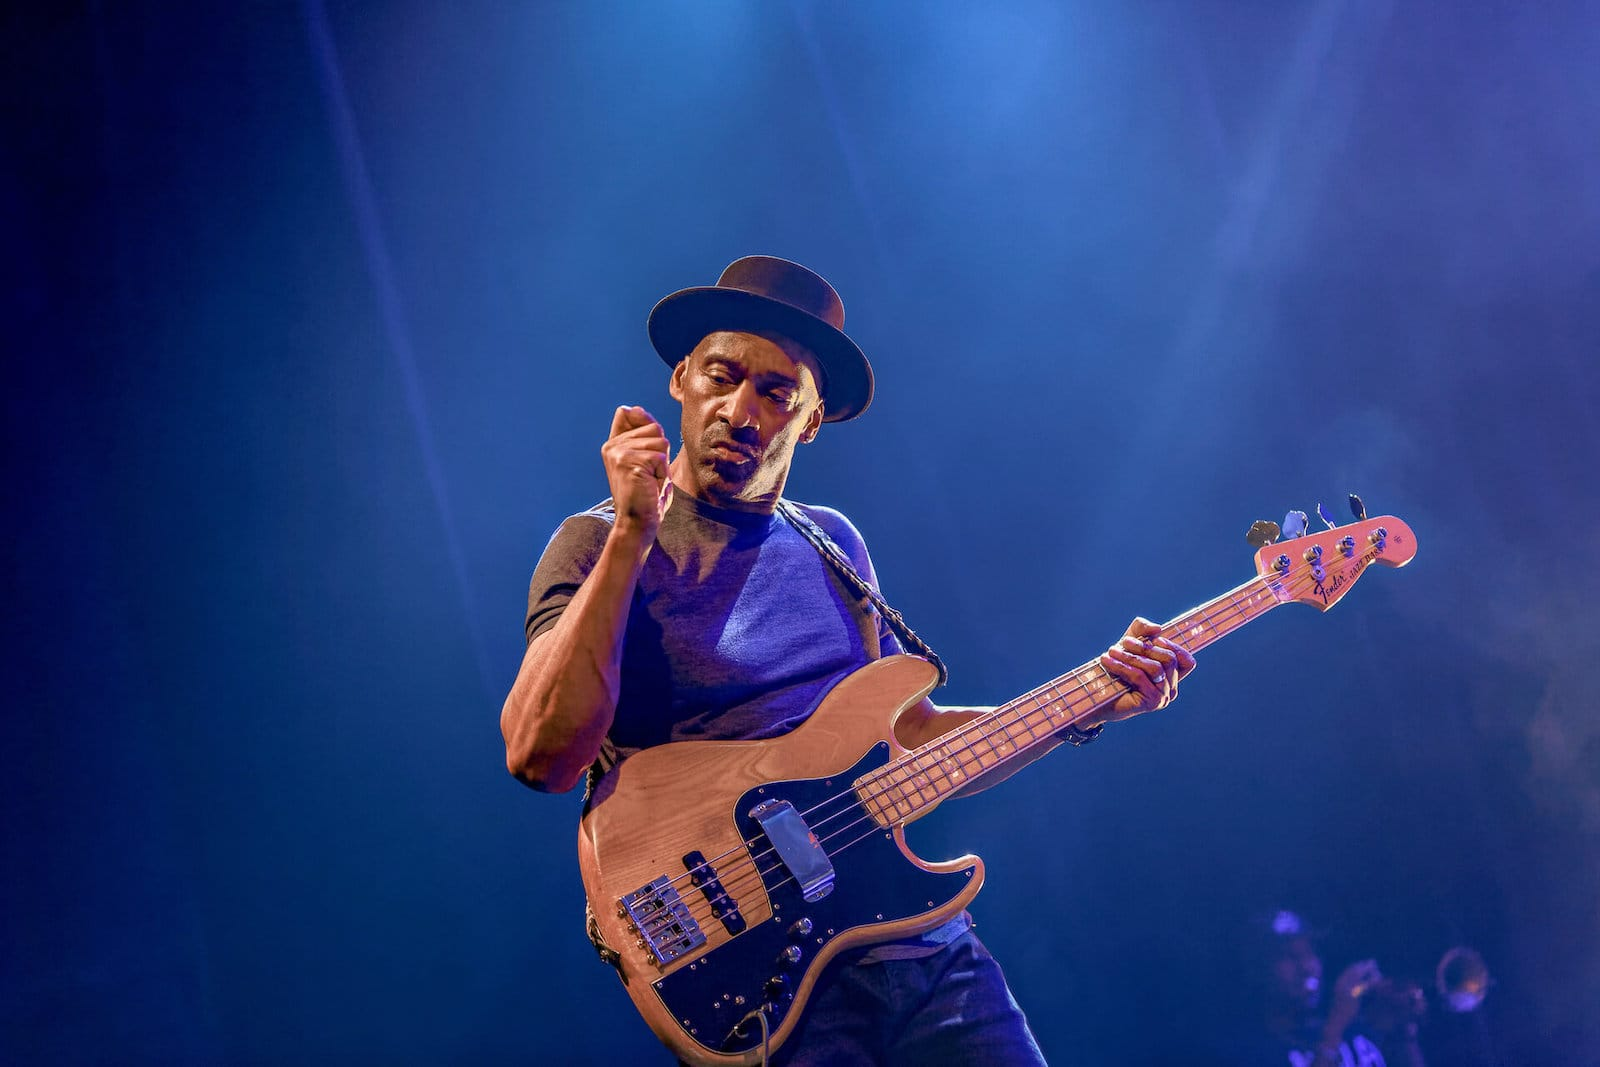 Marcus Miller headlines Jazz in the Park 2019